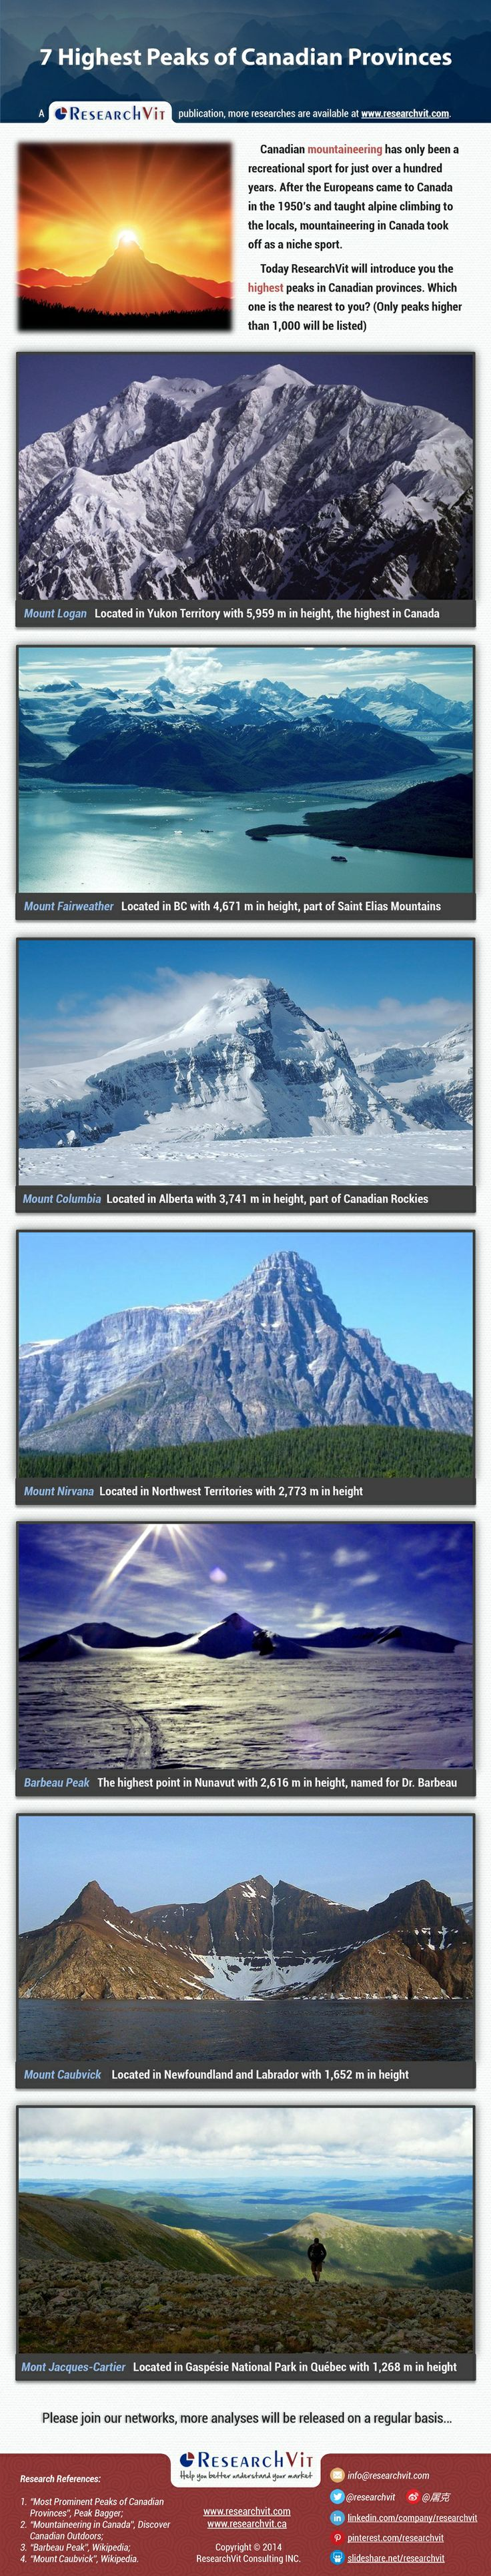 7 Highest Peaks of Canadian Provinces: Canadian mountaineering has only been a recreational sport for just over a hundred years. After the Europeans came to Canada in the 1950's and taught alpine climbing to the locals, mountaineering in Canada took off as a niche sport.  Today ResearchVit will introduce you the highest peaks in Canadian provinces. Which one is the nearest to you? (Only peaks higher than 1,000 will be listed)